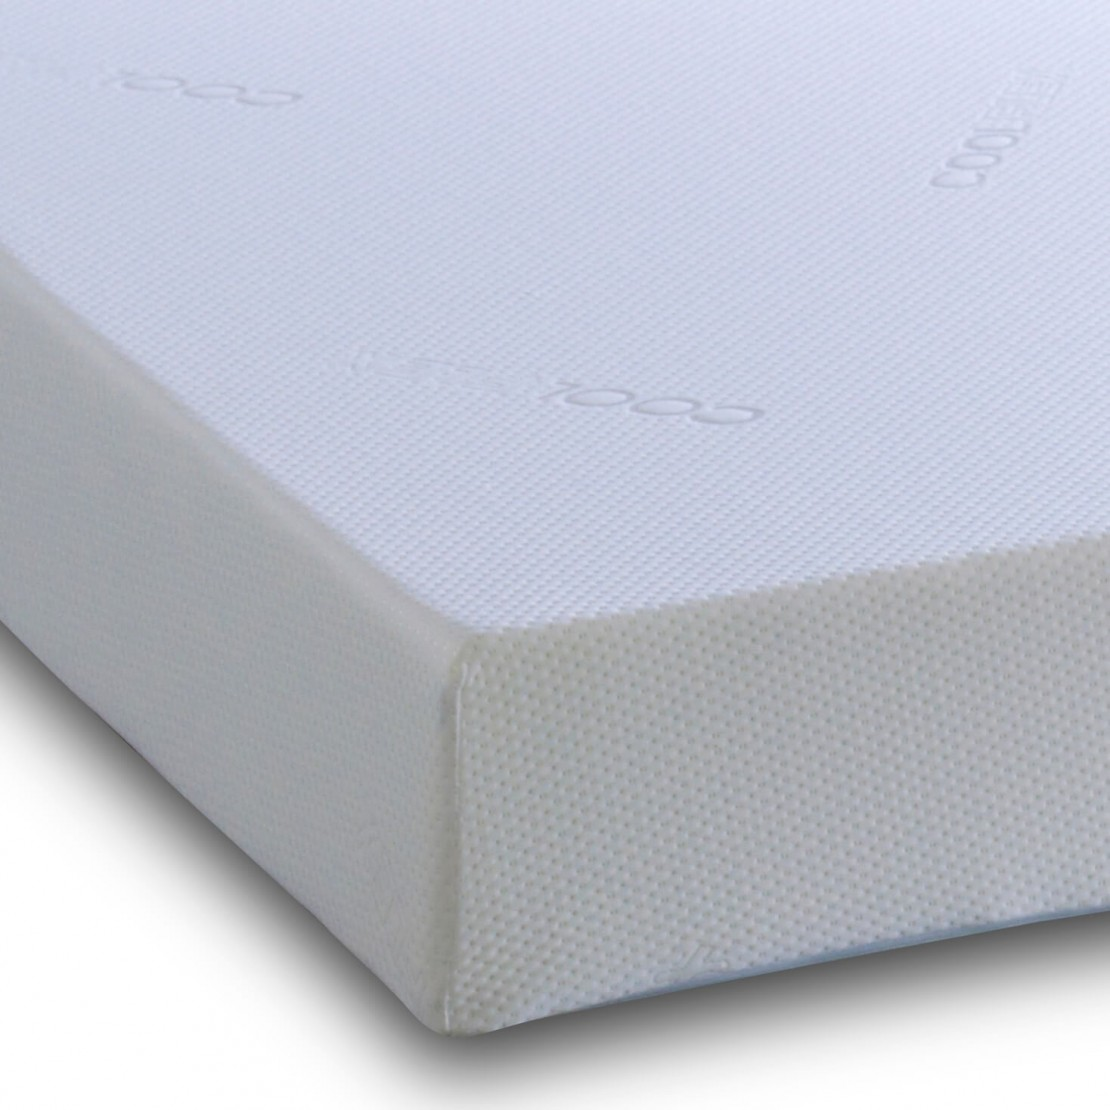 /_images/product-photos/visco-therapy-memory-foam-10,000-regular-mattress-a.jpg